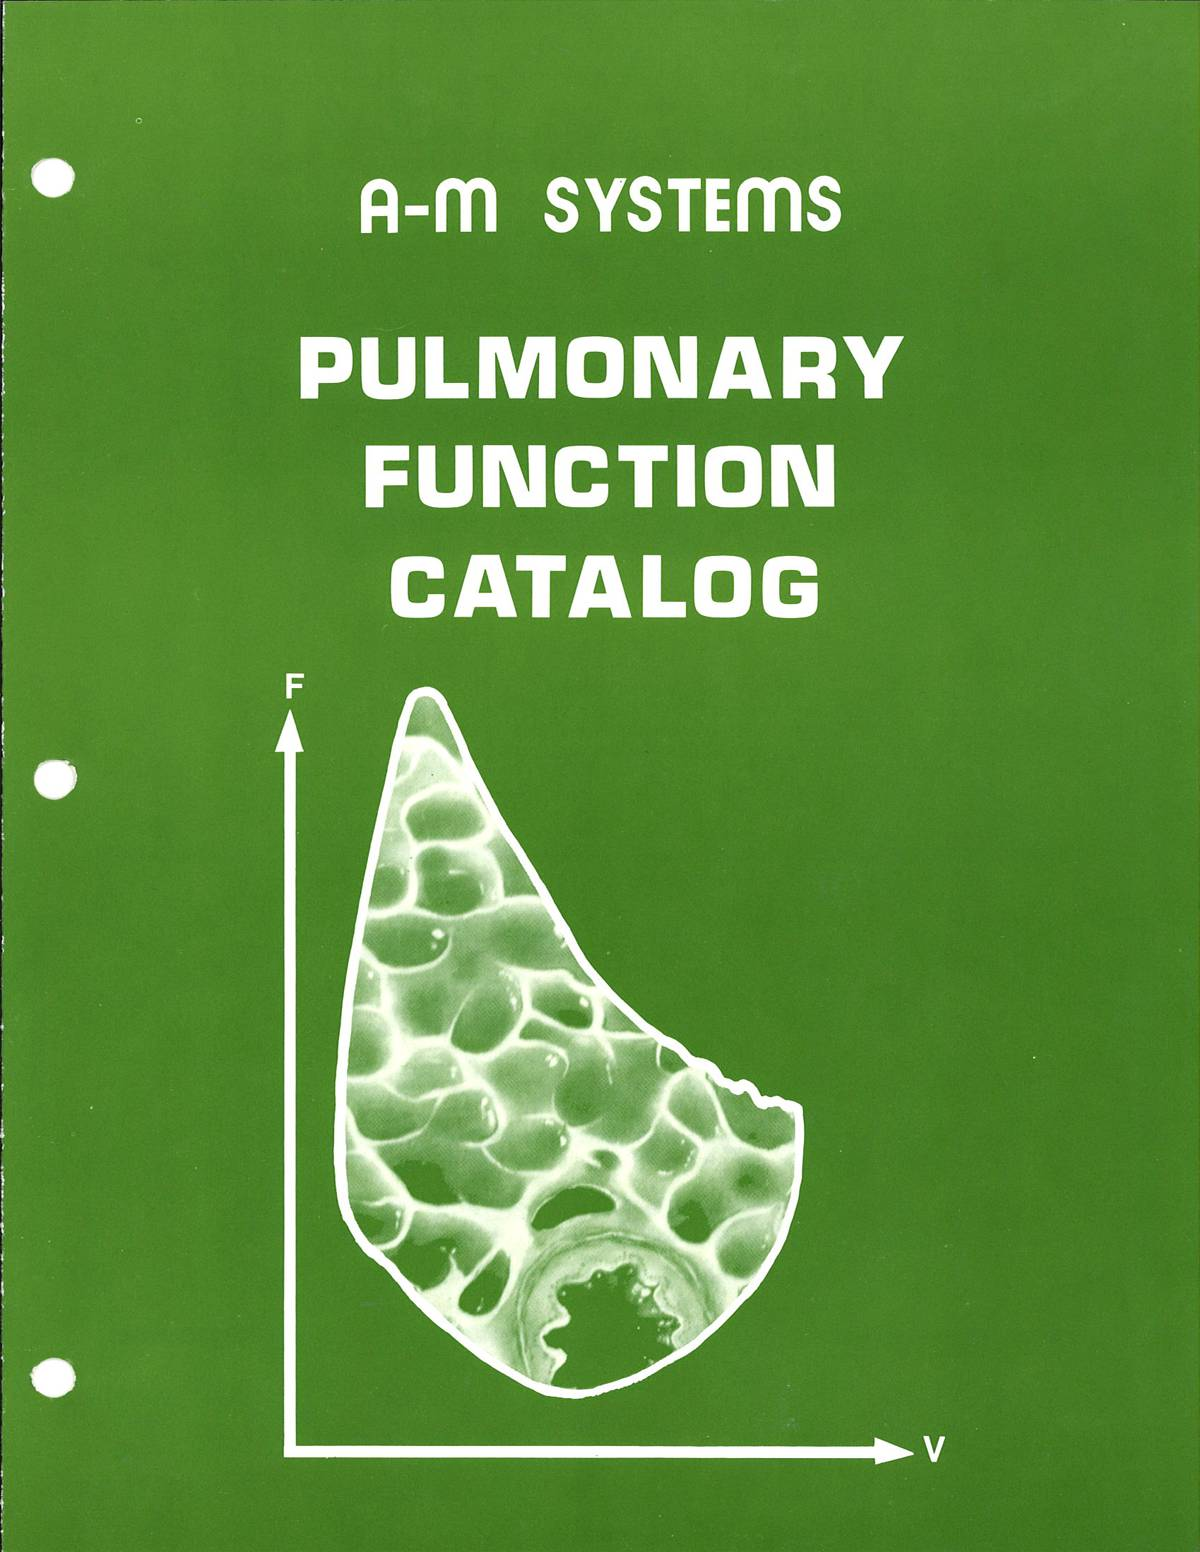 Our 1977 pulmonary catalog shows a cross section of a bronchiole which is pasted inside a flow-volume loop. (Image: A-M Systems Archives)